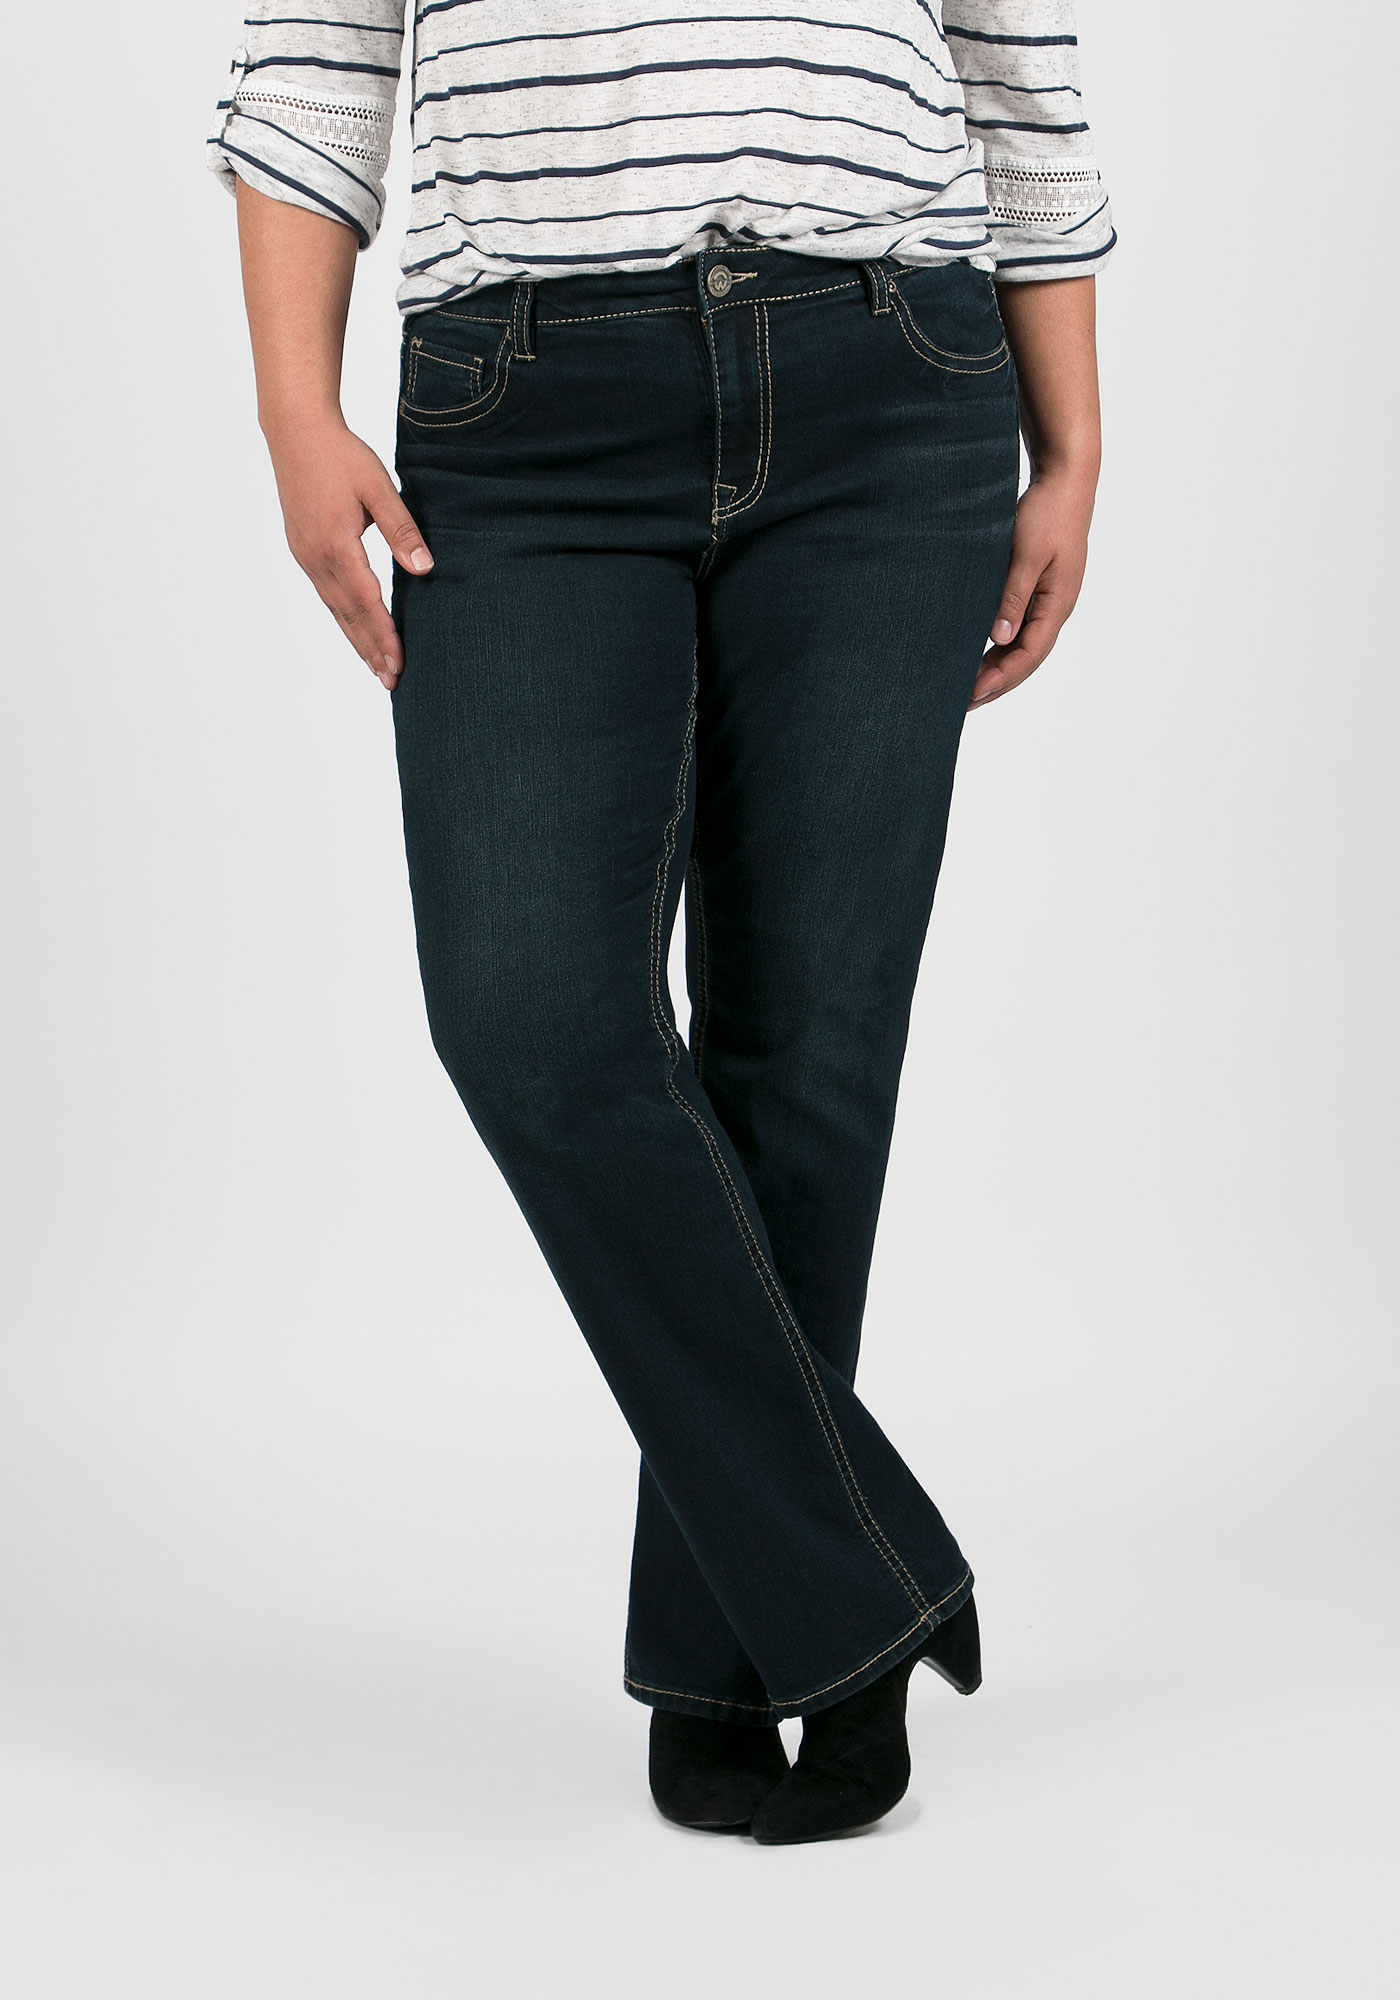 2cf1ae49a7c6f Women s Plus Size Straight Leg Jeans